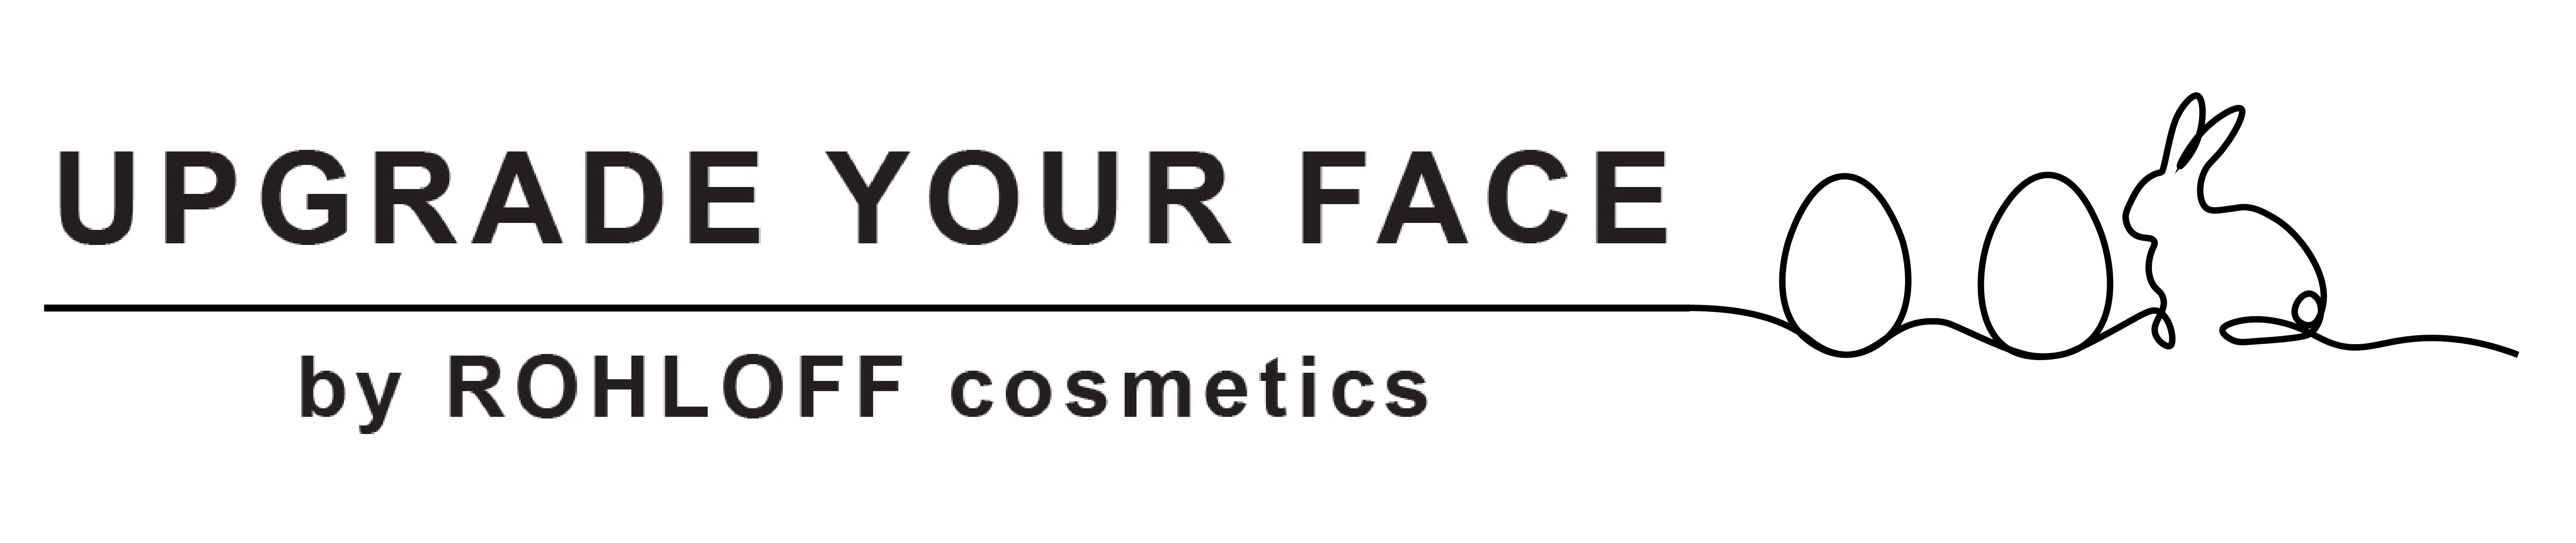 UPGRADE YOUR FACE - Online Shop für Premium Kosmetik von EVAGARDEN, BELLEFONTAINE und COSNOBELL